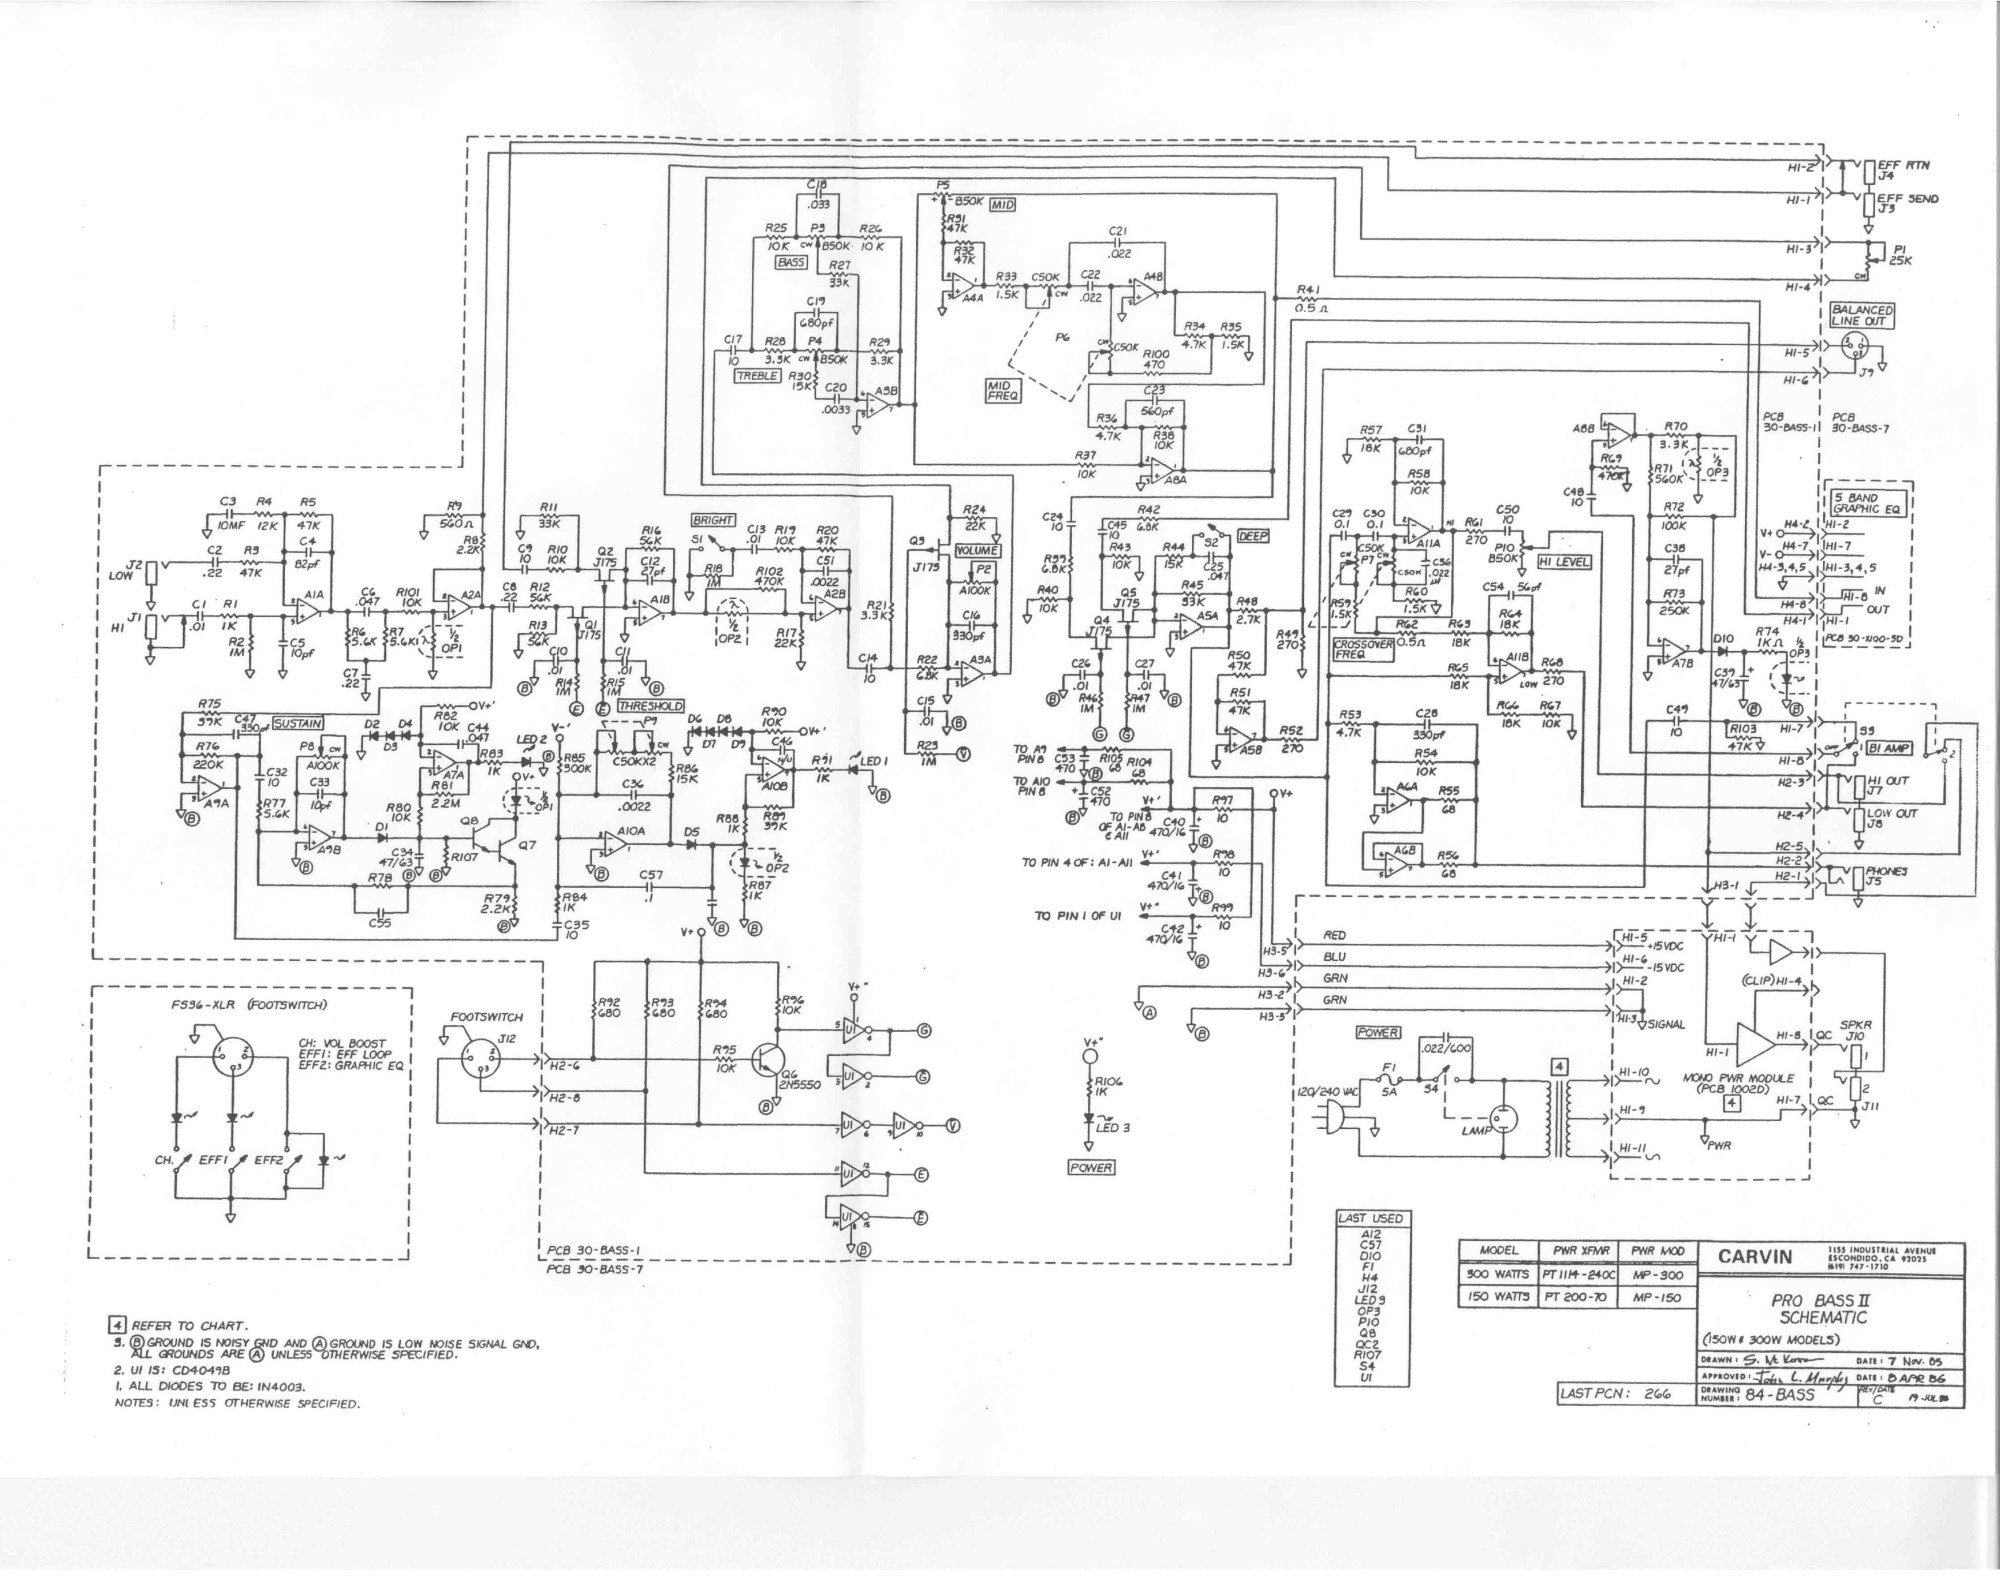 hight resolution of carvin schematics tube amp schematics carvin x100b advertisment 77 carvin probassii jpg 1576 kb